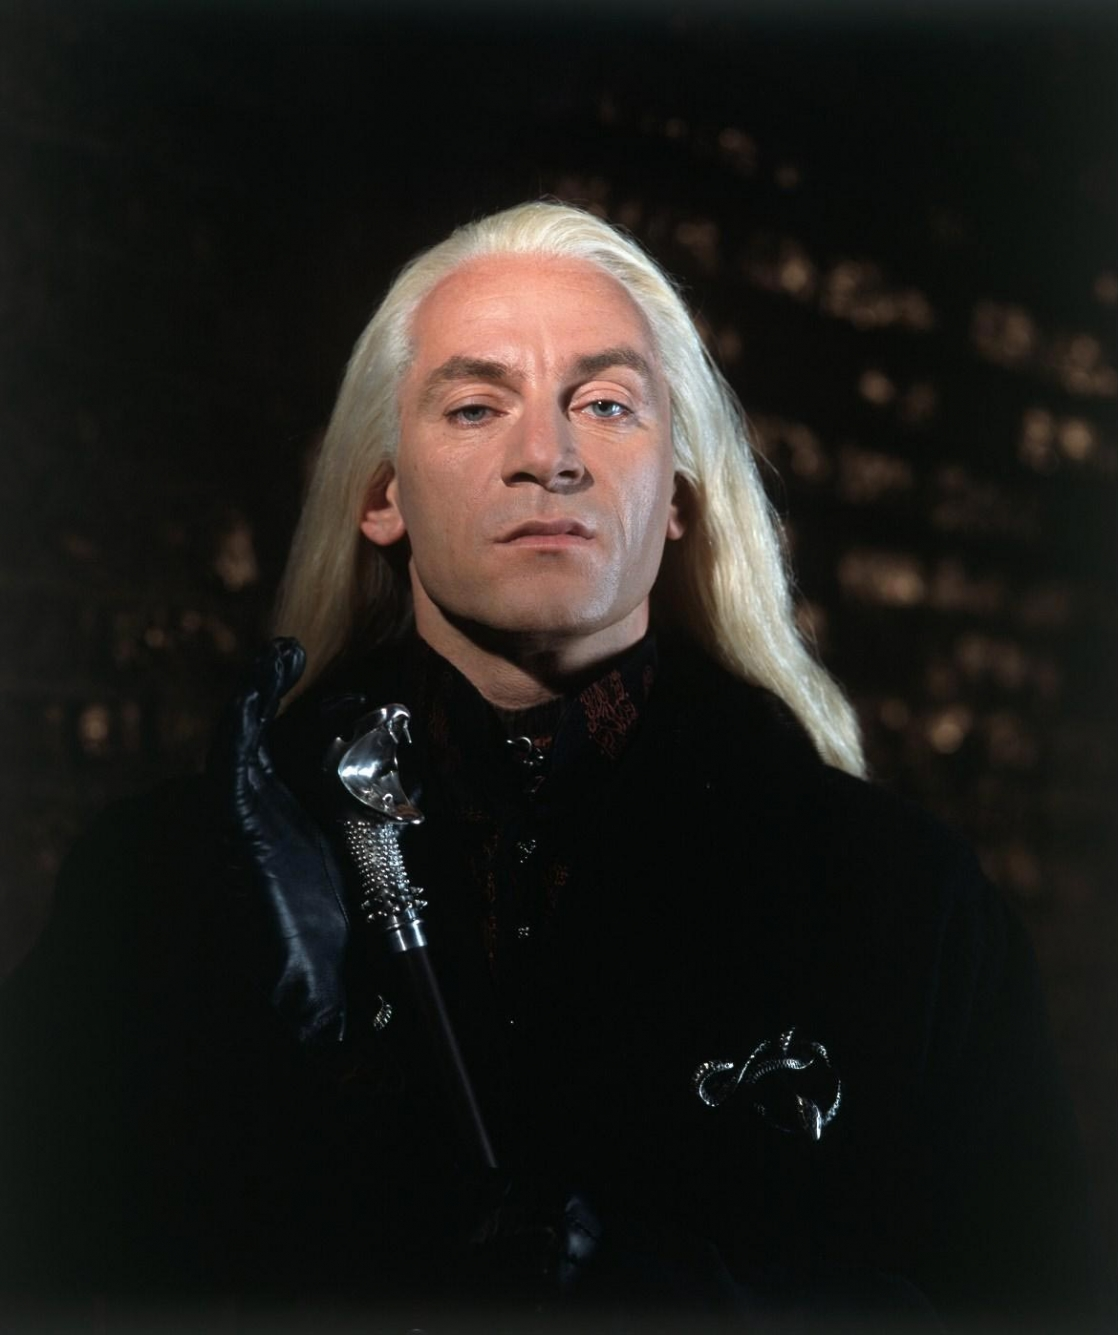 https://vignette.wikia.nocookie.net/harrypotter/images/5/5a/PromoHP2_Lucius_Malfoy.jpg/revision/latest?cb=20150721122626&path-prefix=ru